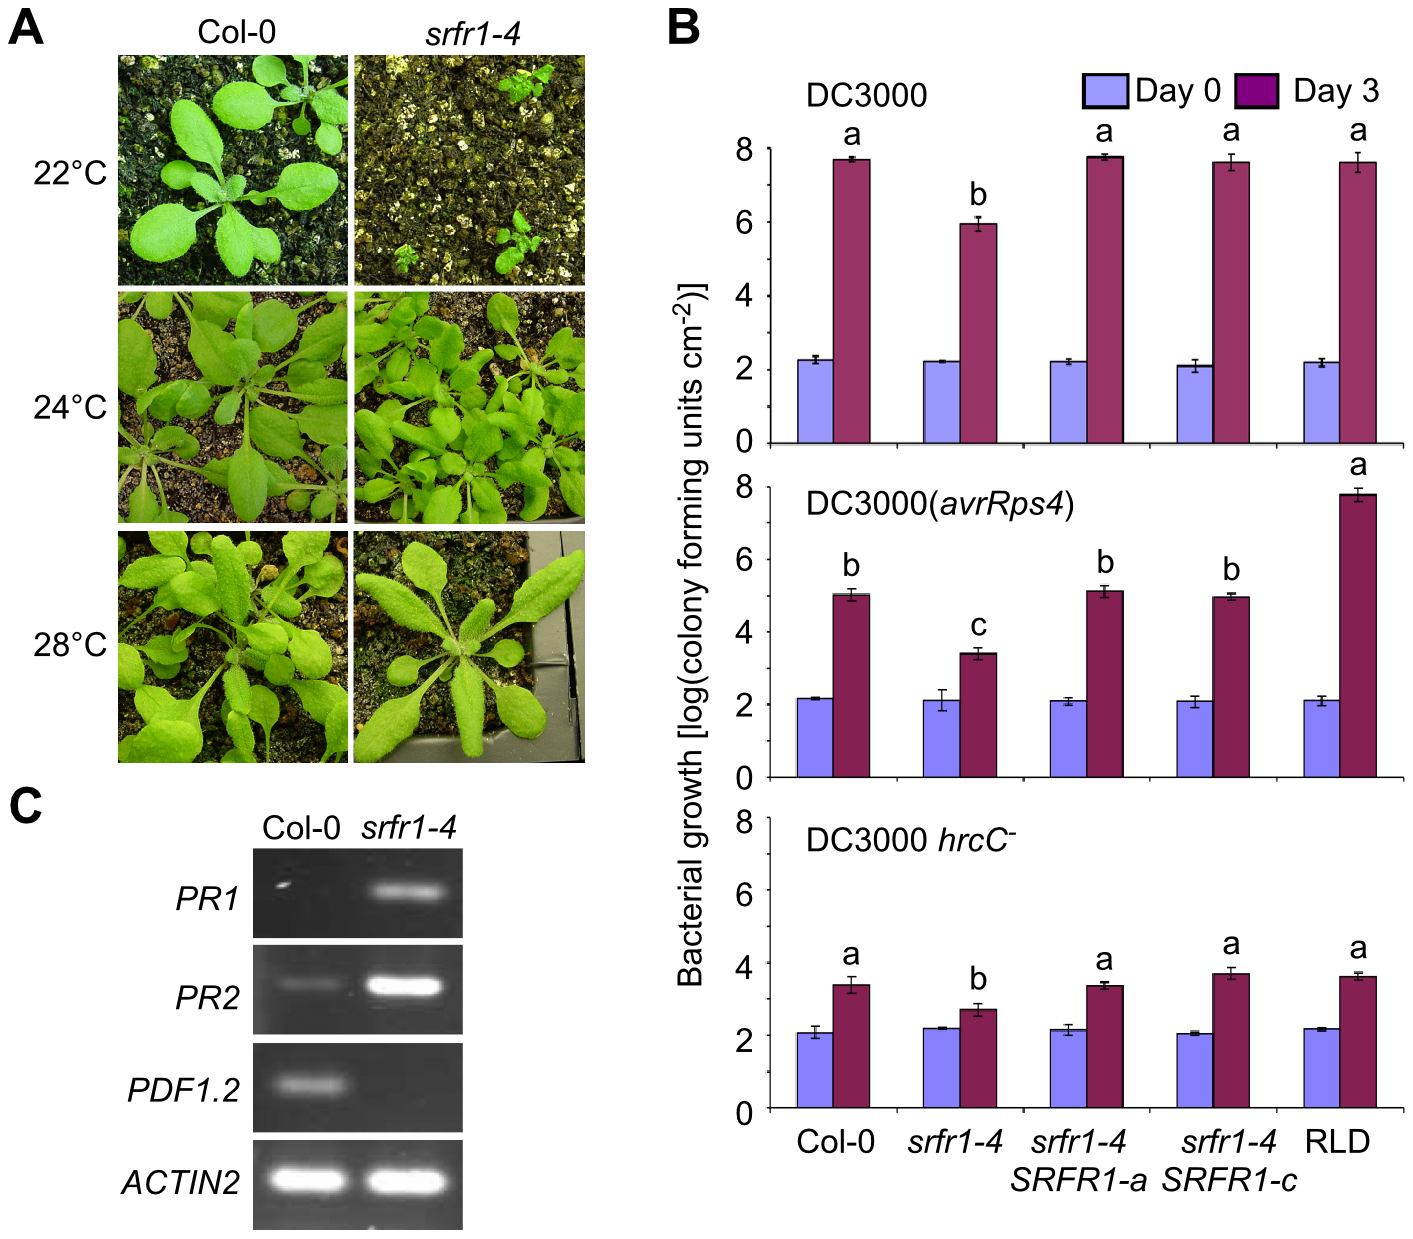 The growth phenotype of <i>srfr1-4</i> is temperature-dependent and accompanied by constitutive activation of defenses.